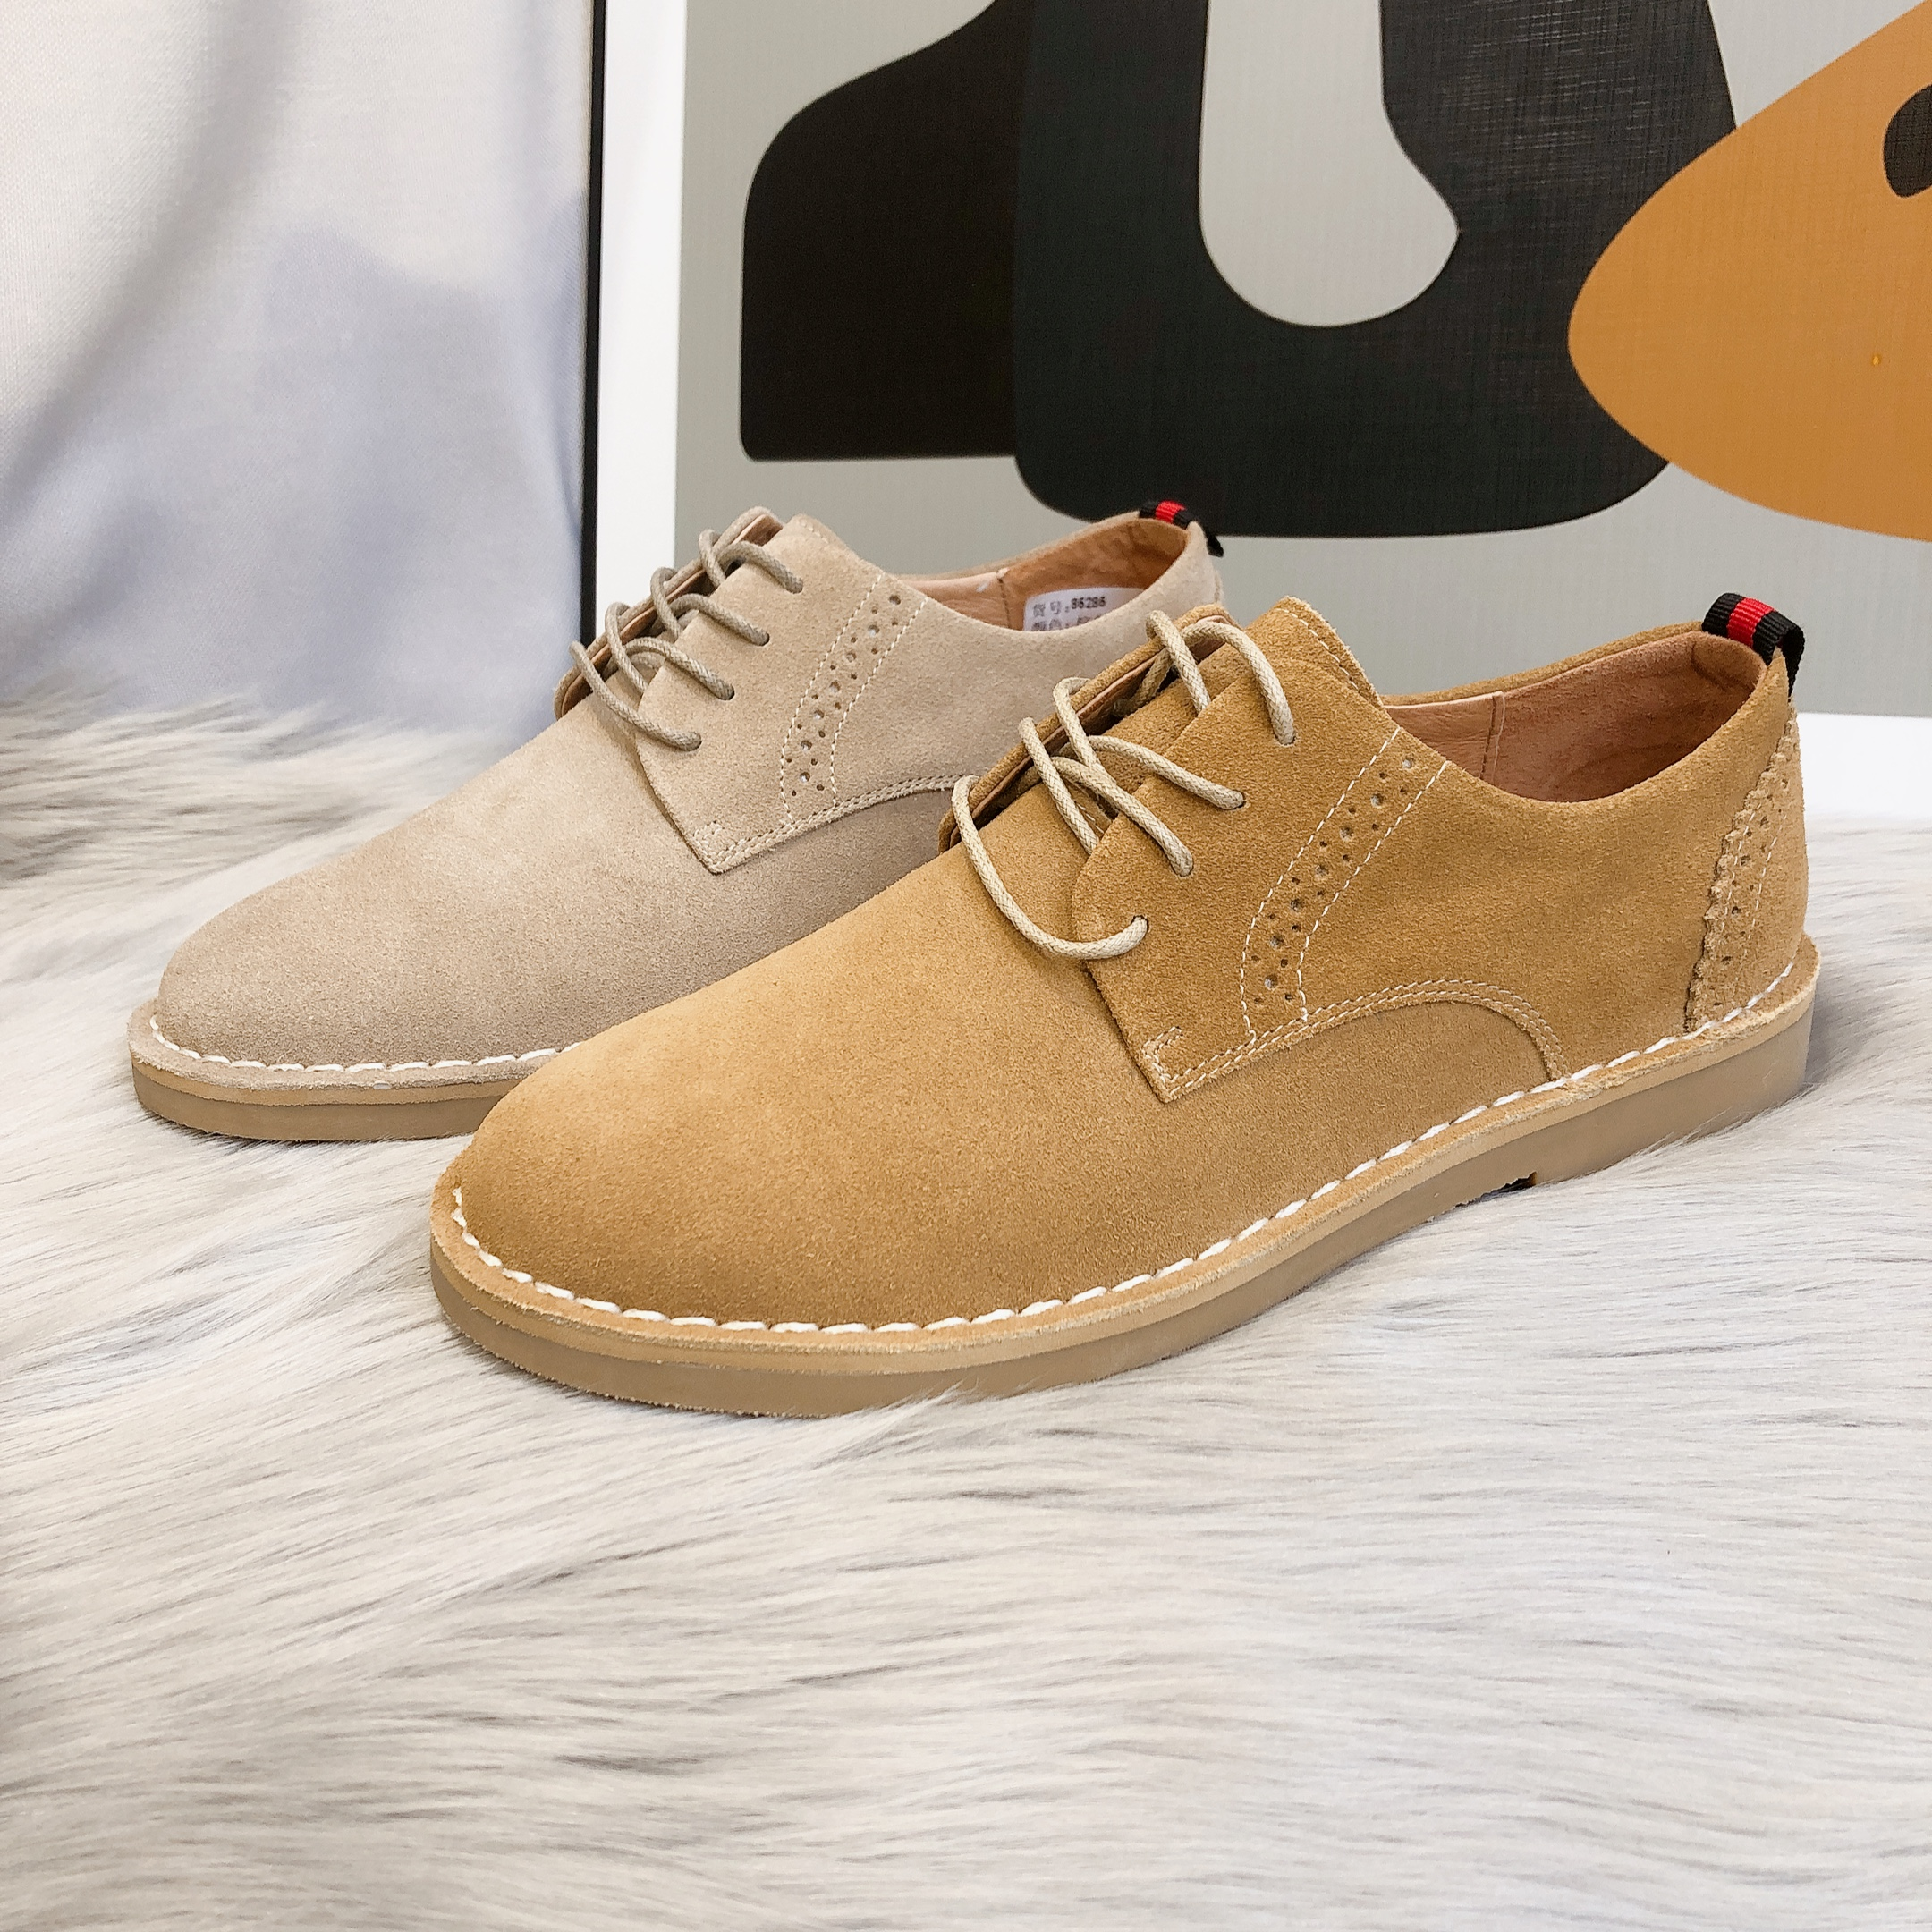 Nubuck leather work wear shoes mens fashion 2020 new casual versatile lace up leather shoes British retro Oxford Shoes yellow